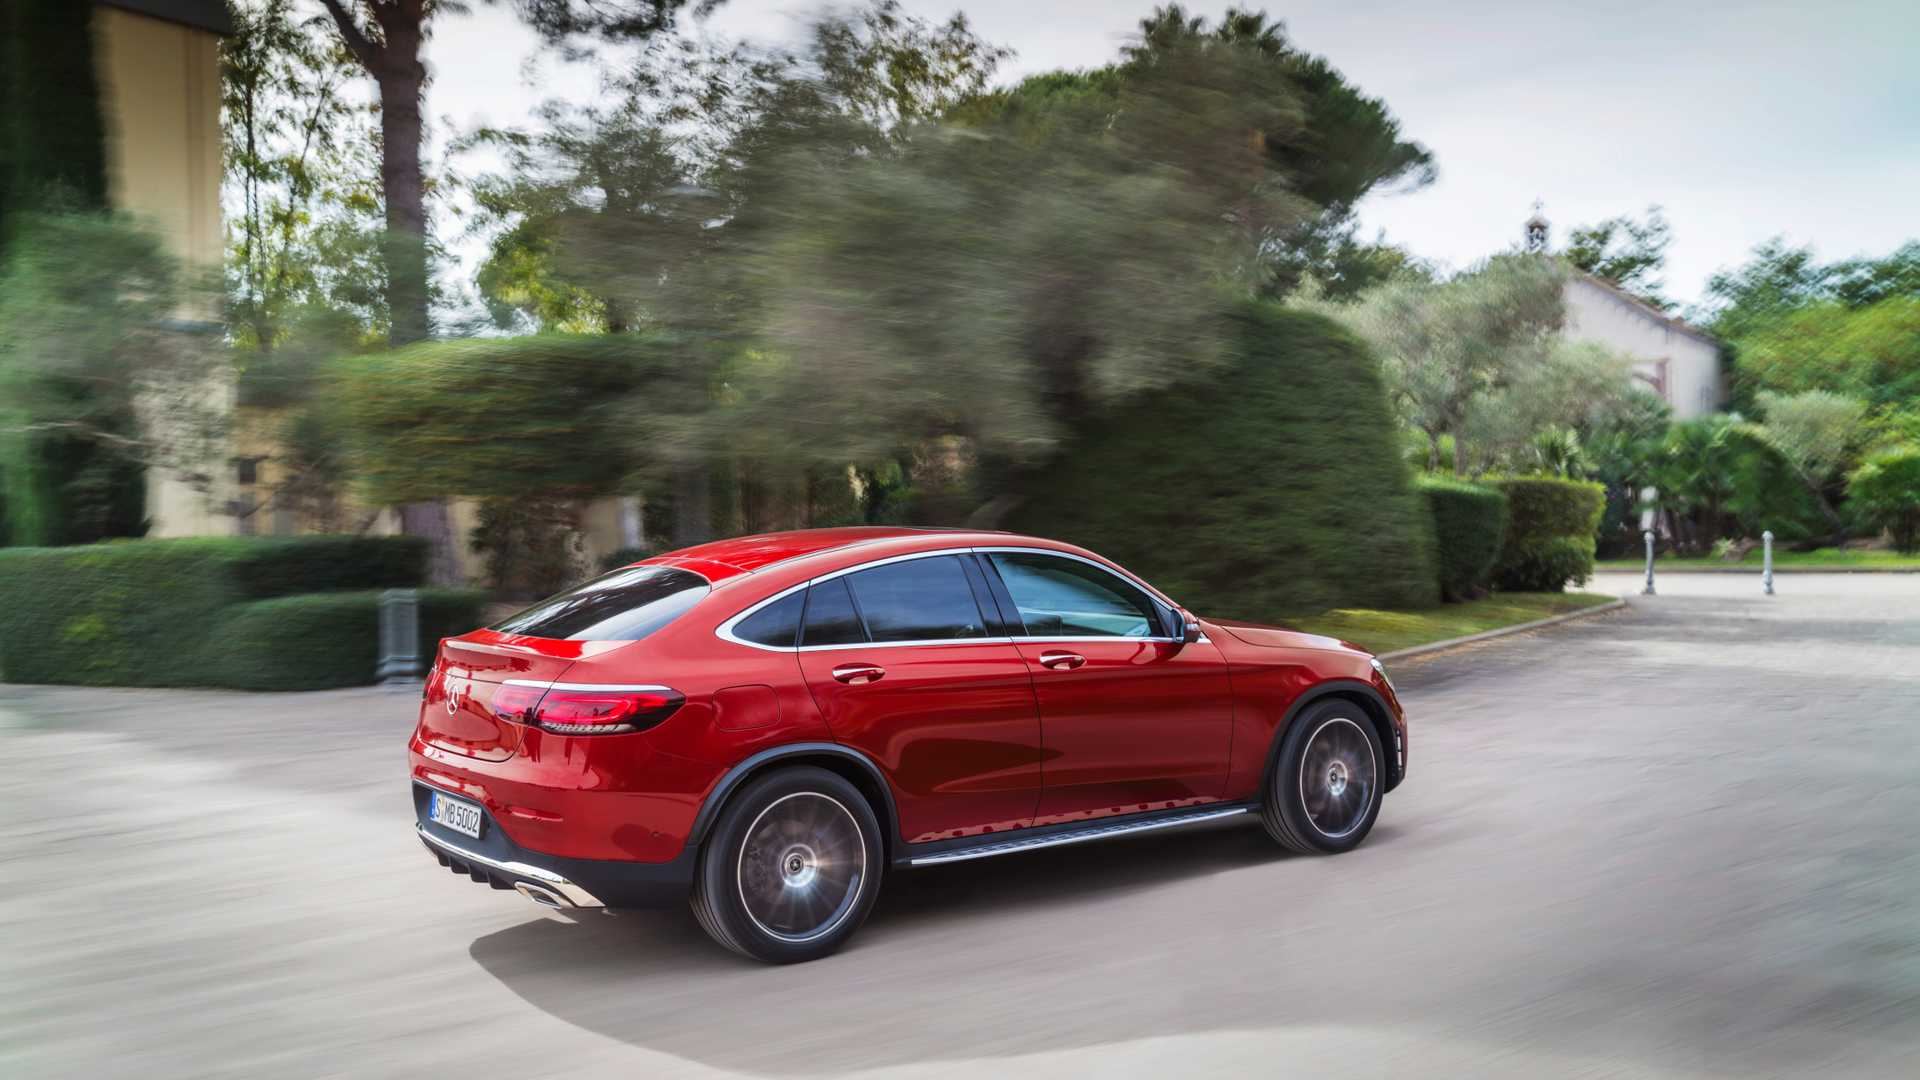 Mercedes Glc Coupe 2019 Rojo 08